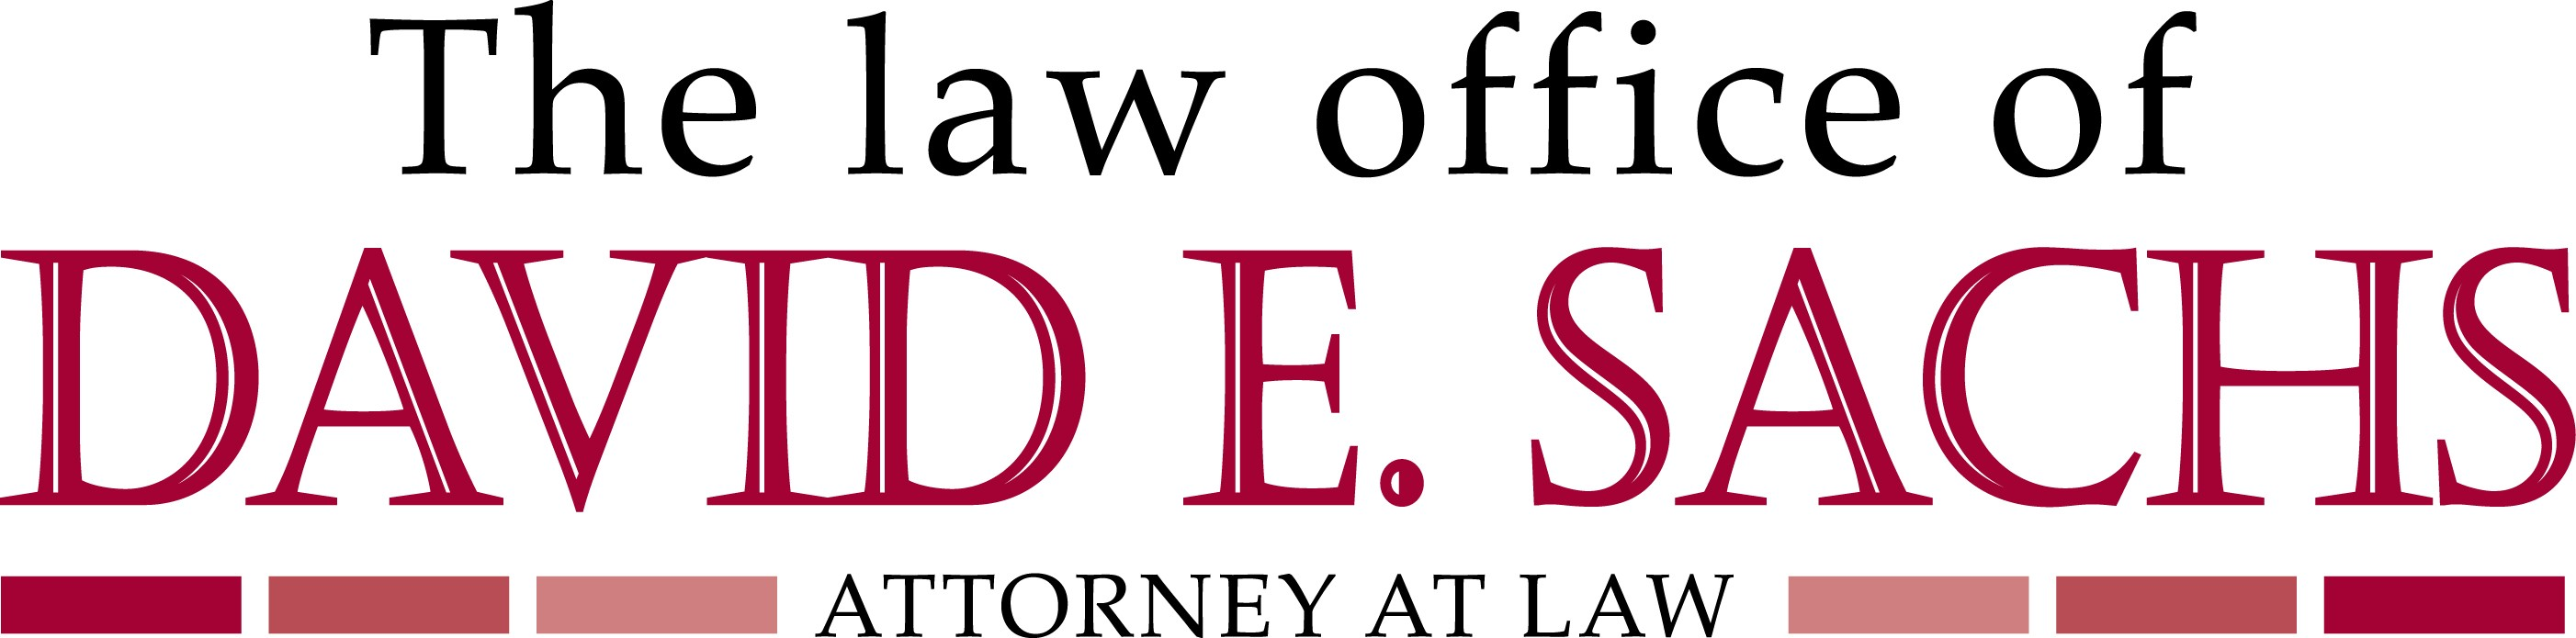 law offices of david sachs